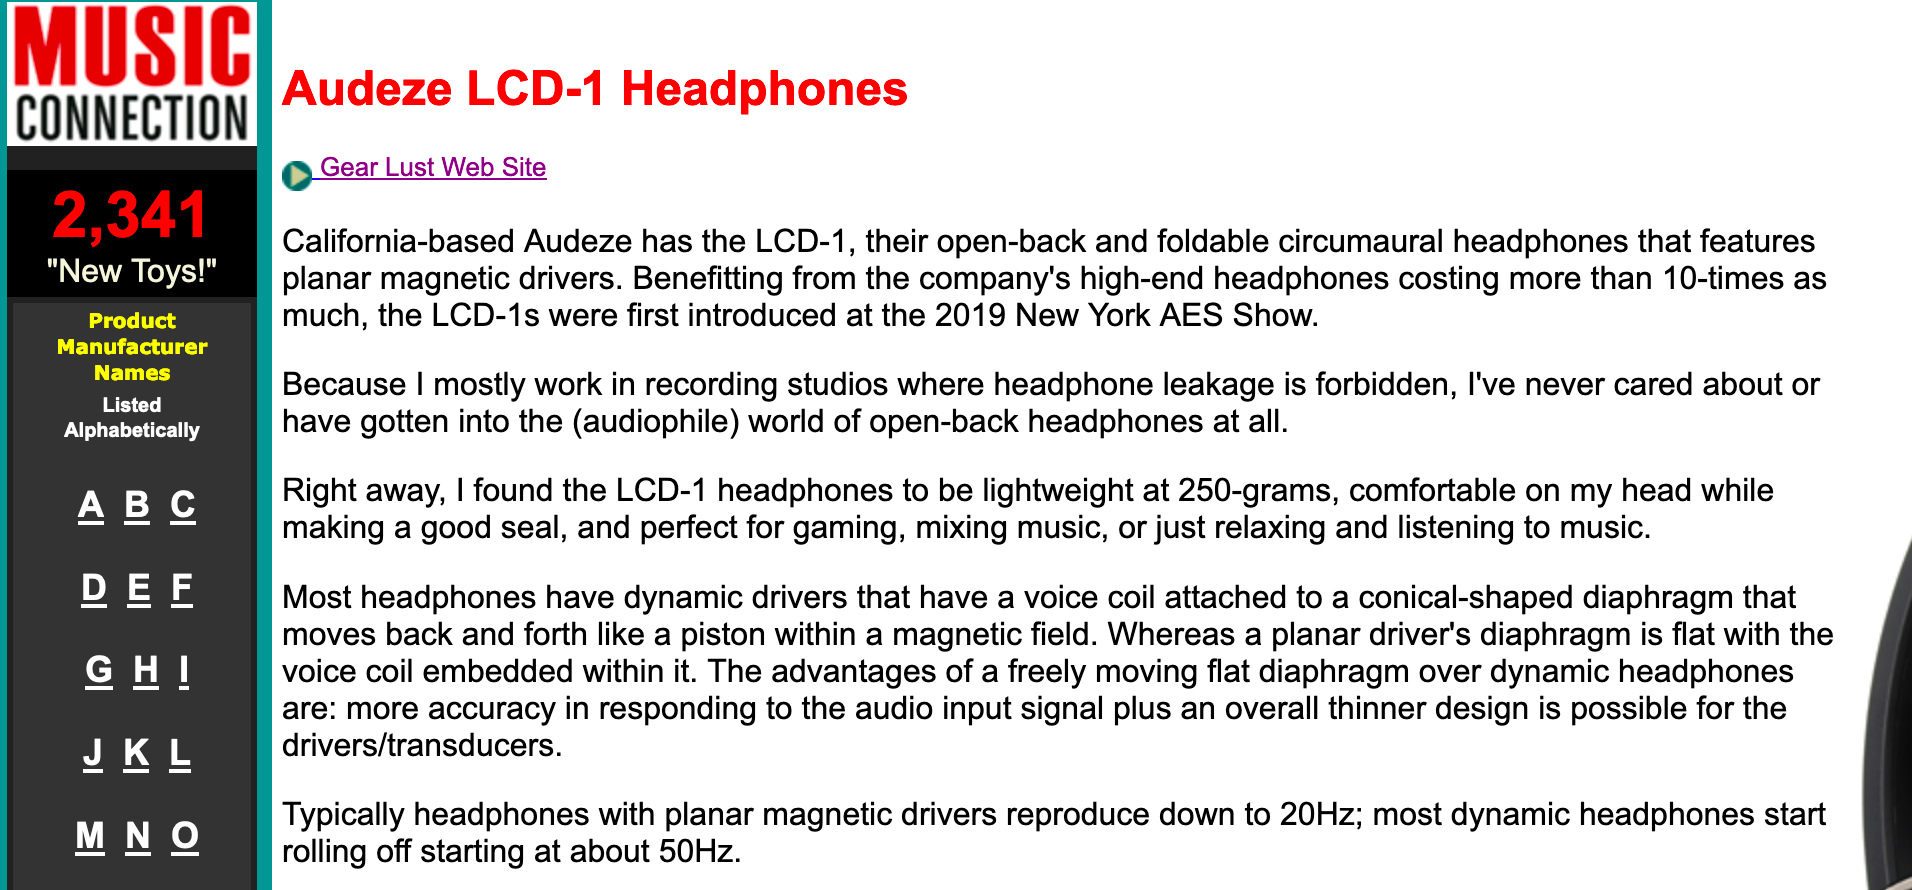 """My very first pair of open-back, planar driver headphones, and it's an awesome experience!"" Says Music Connection About Audeze LCD-1"